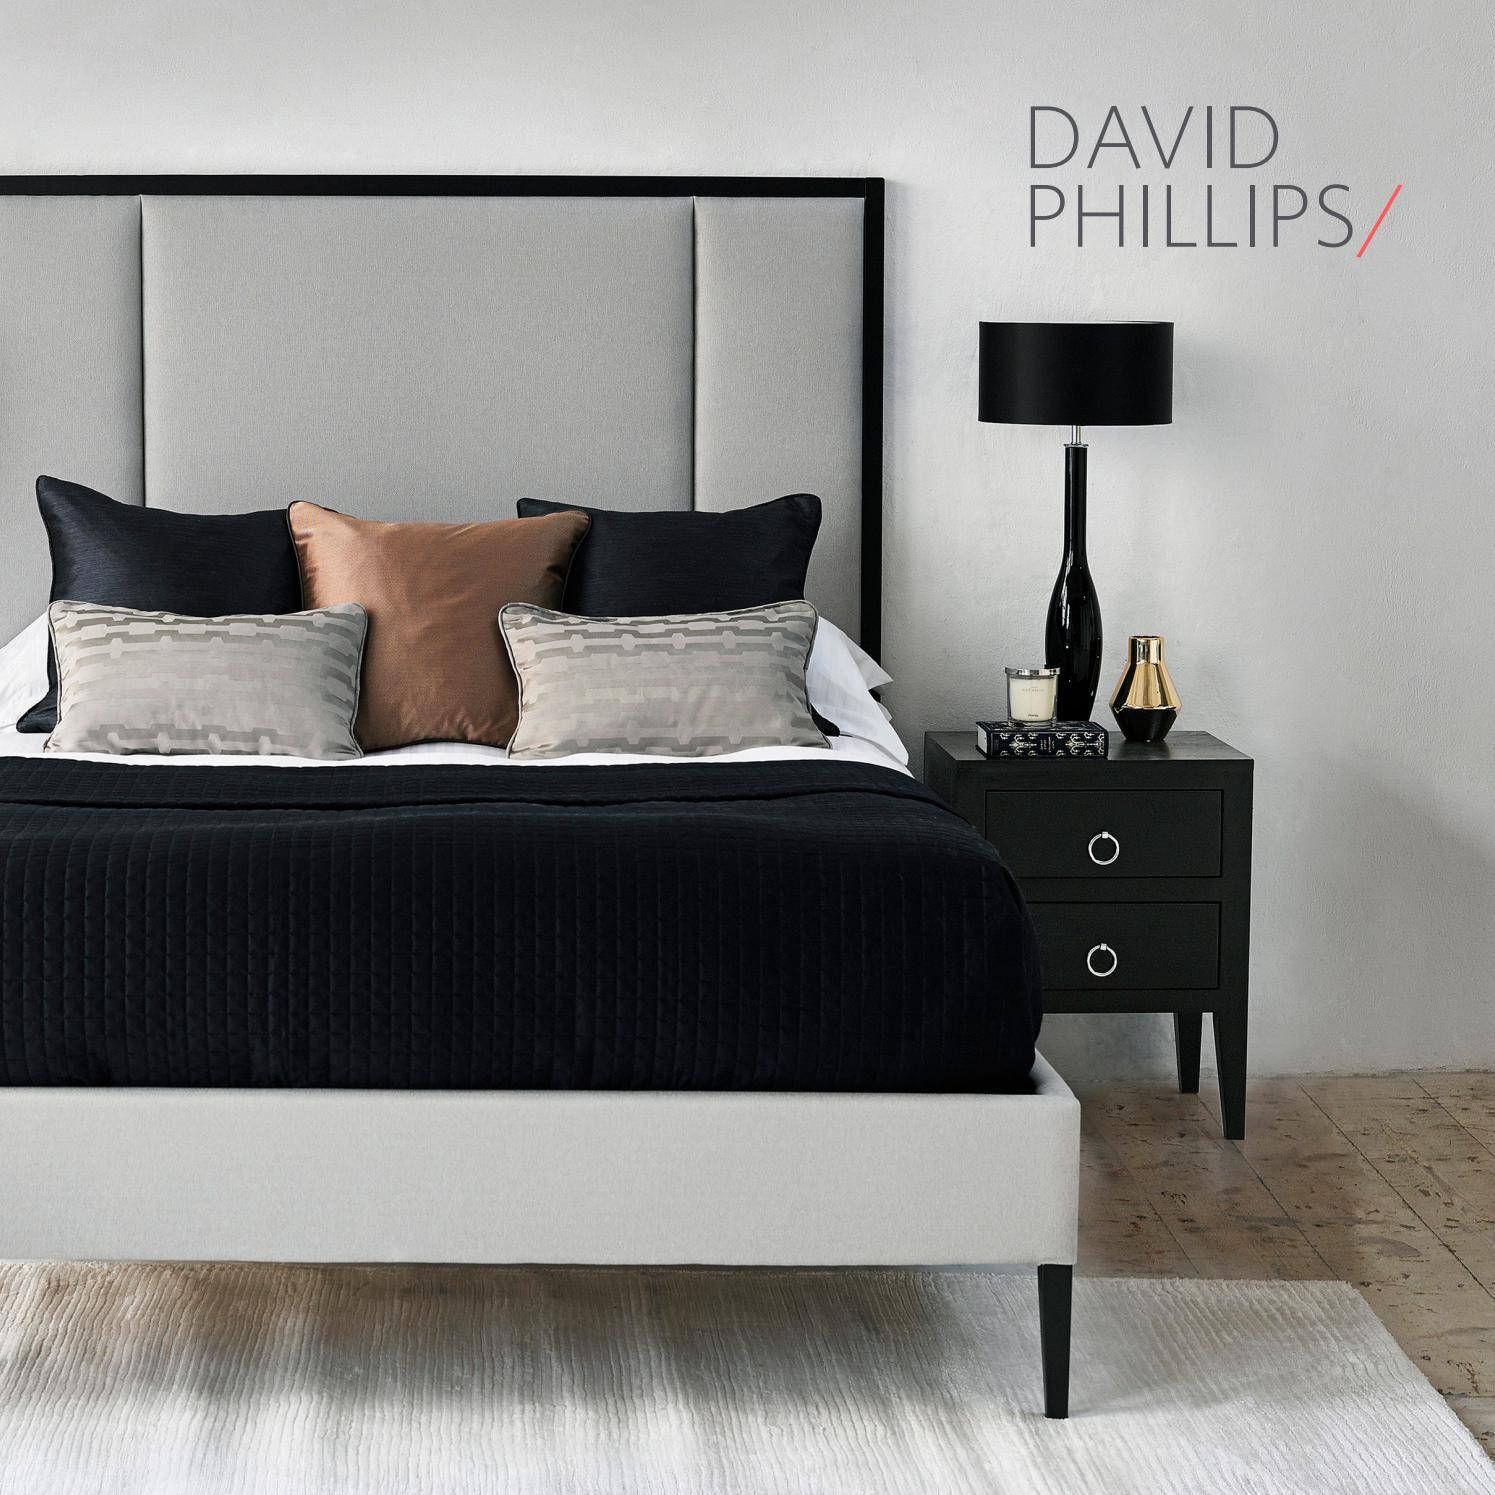 David phillips product catalogue 2017 18 by david phillips for Phillips furniture